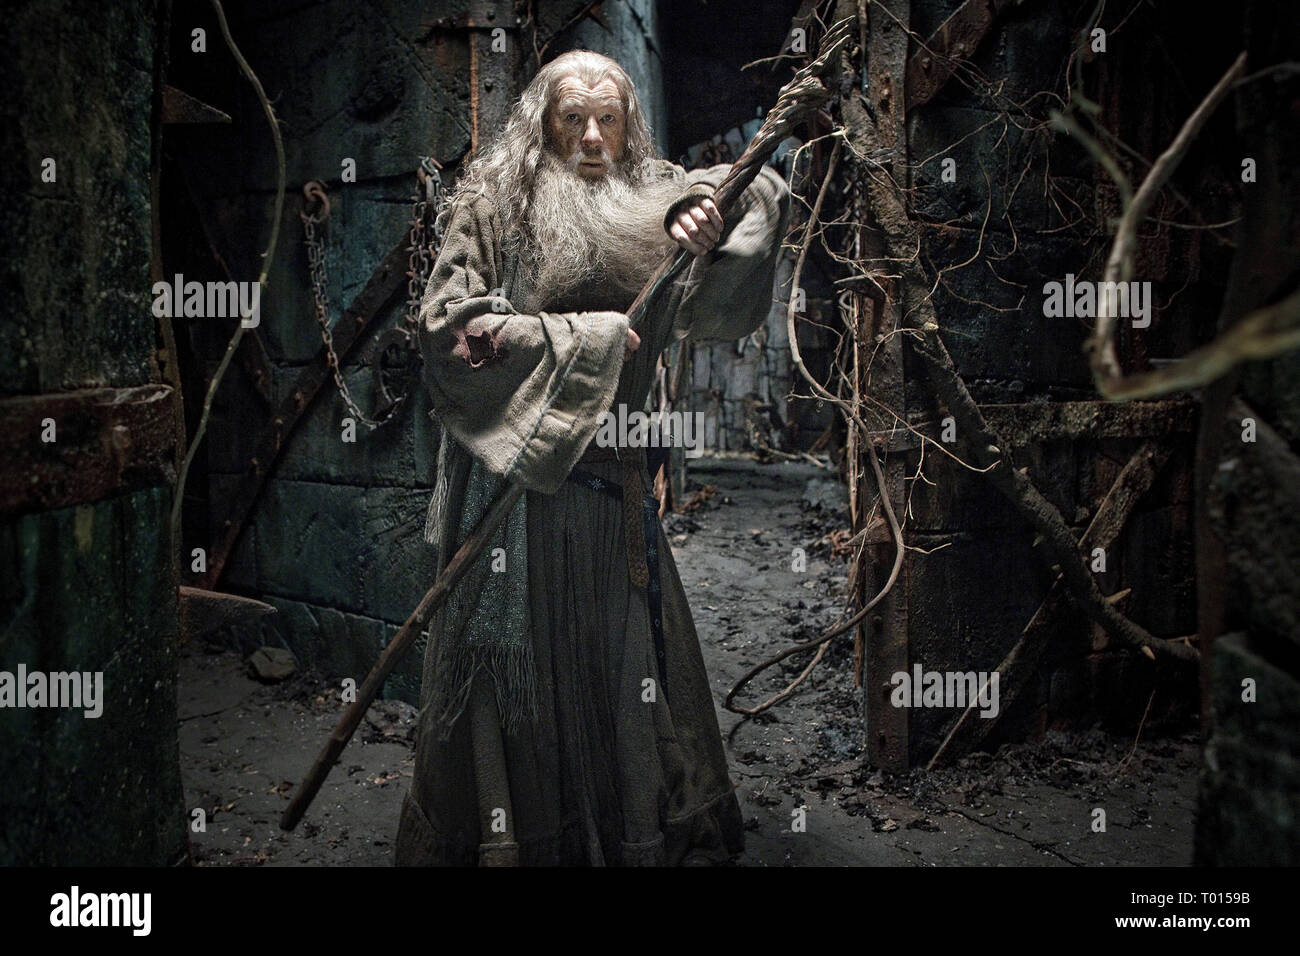 Ian Mckellen The Hobbit The Desolation Of Smaug 2013 Stock Photo Alamy